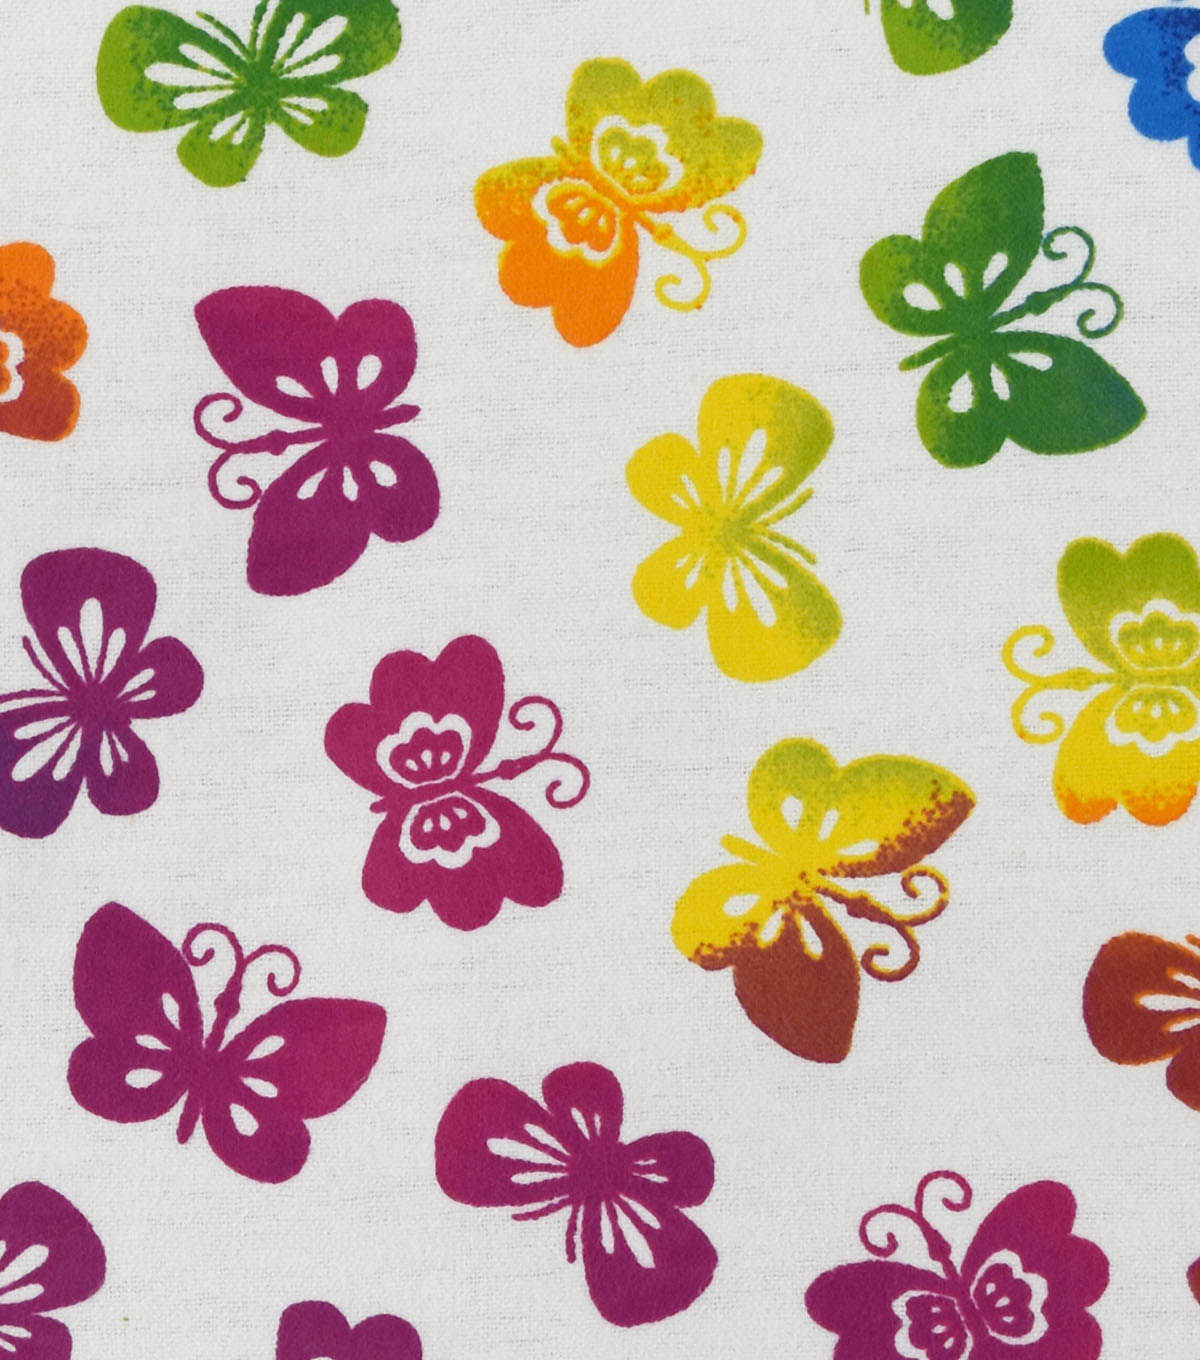 Snuggle Flannel Fabric -Rainbow Butterflies